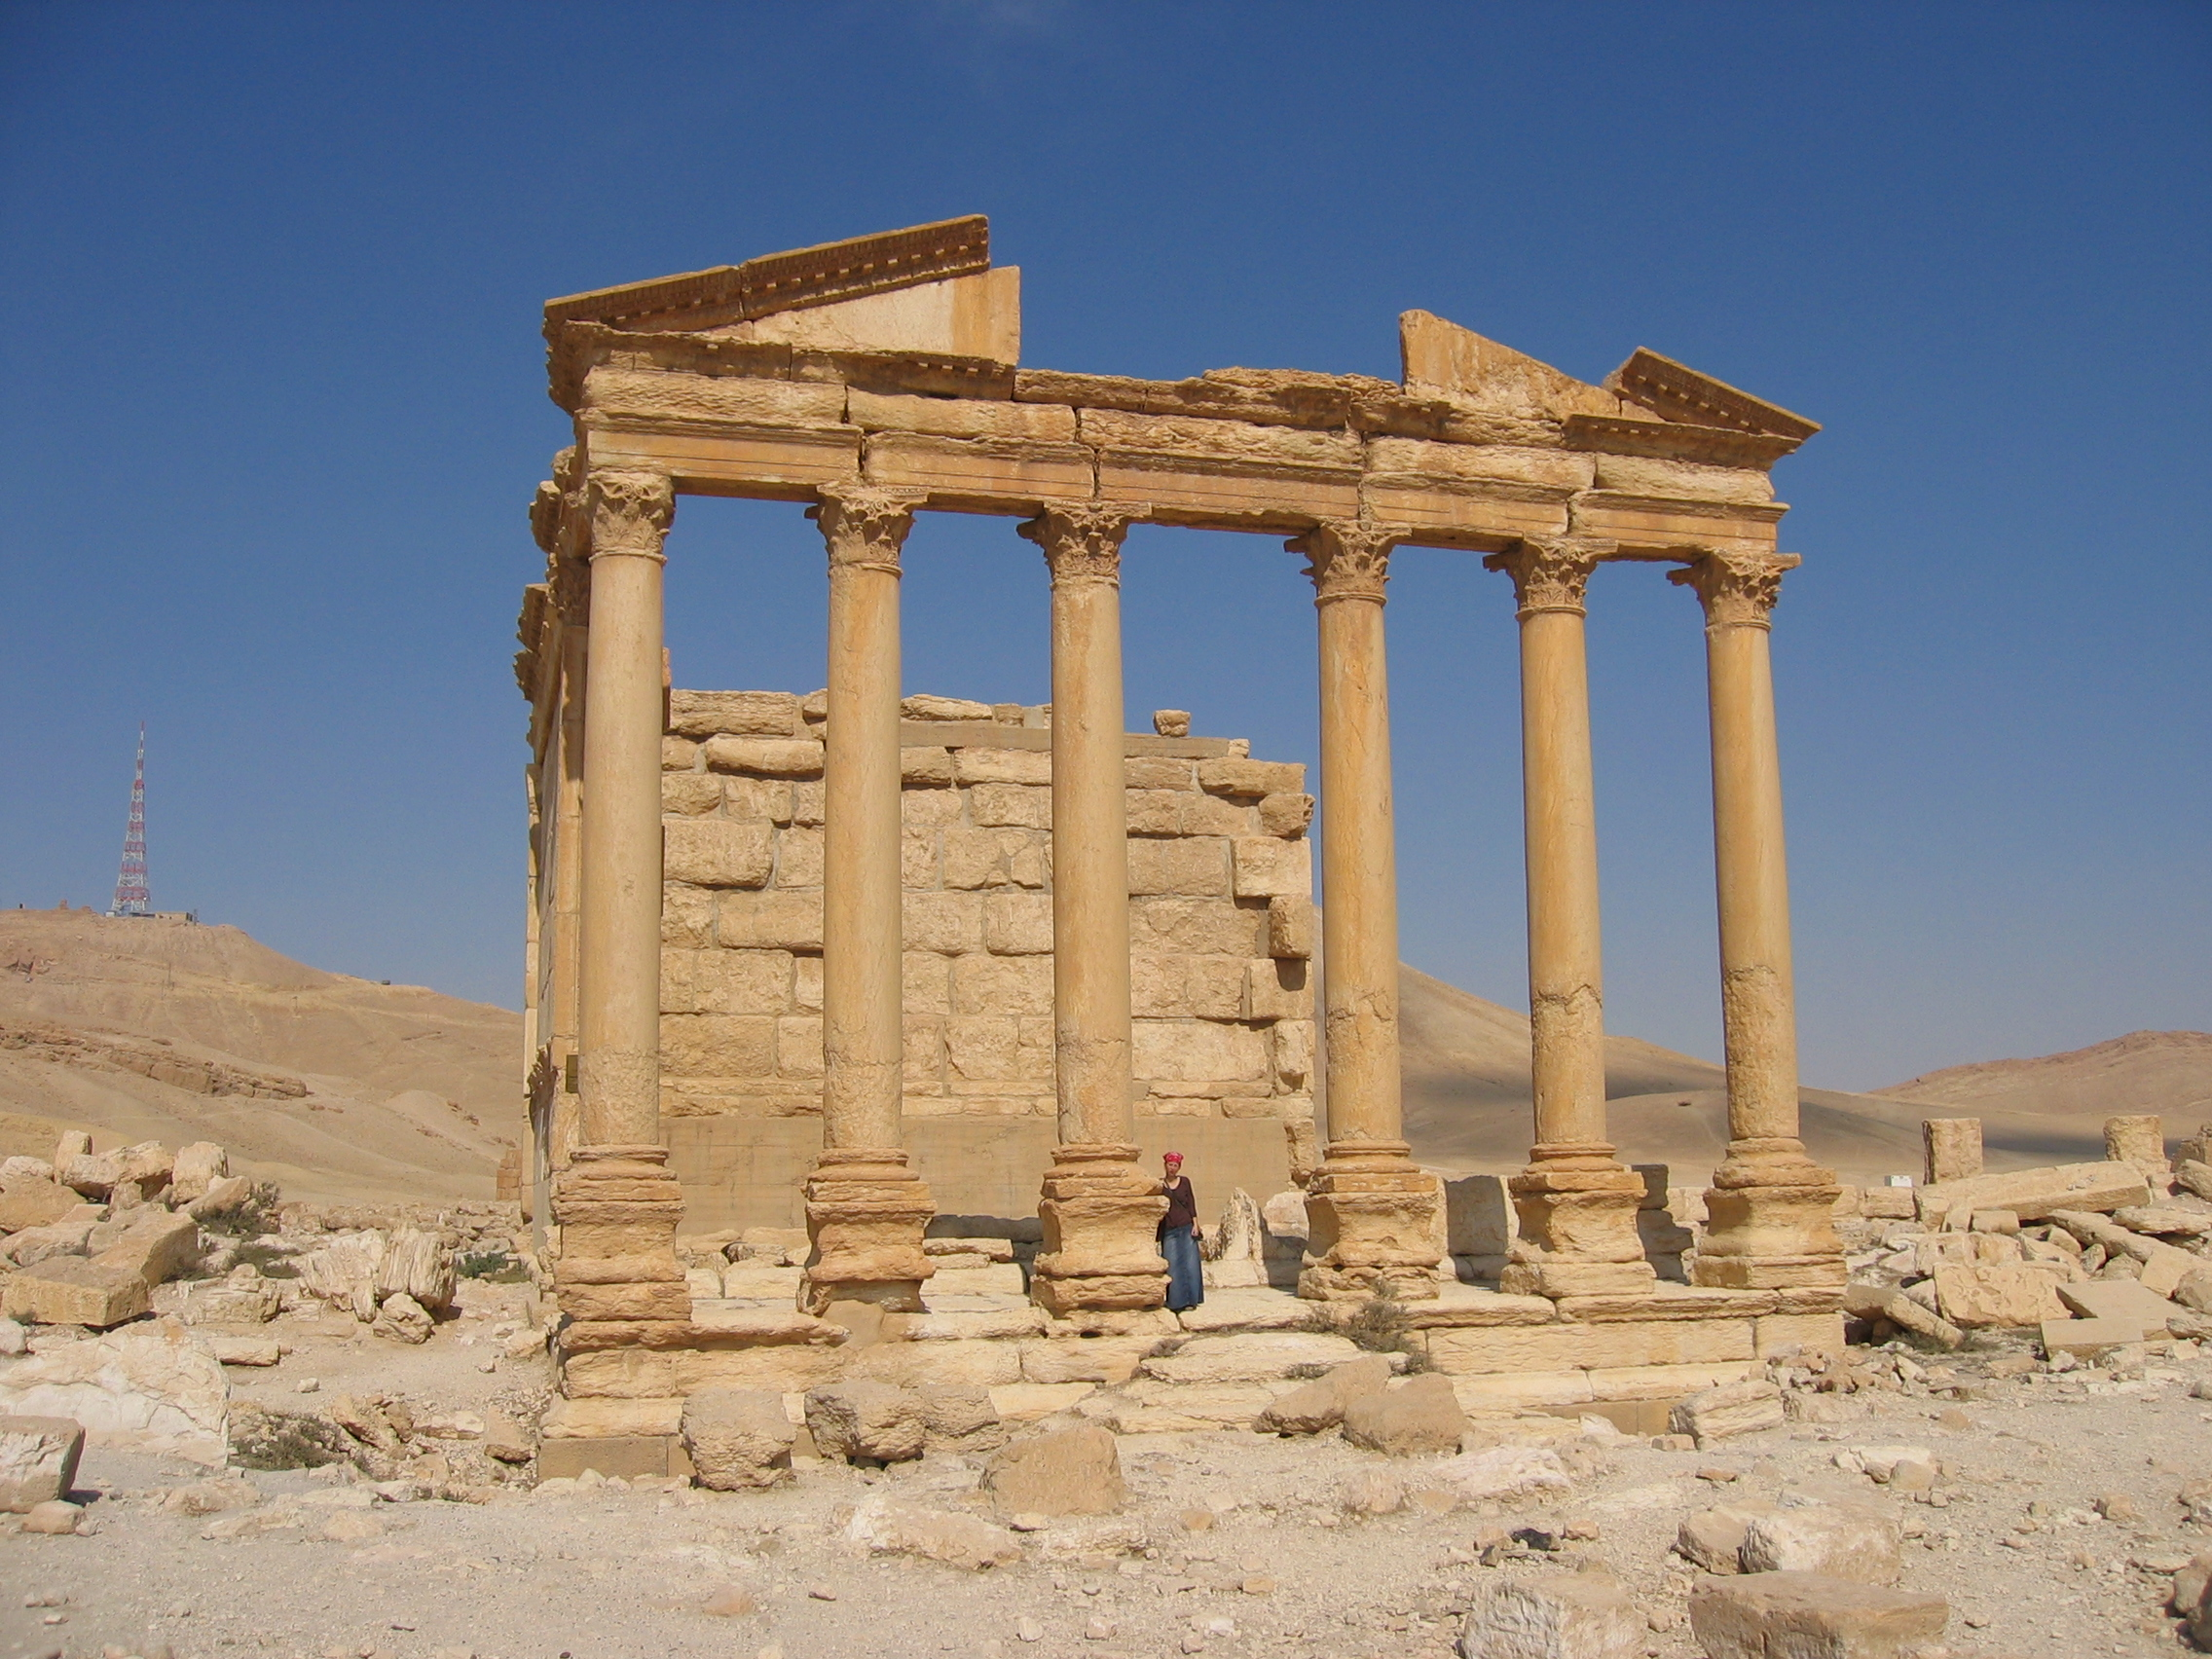 Peristyl House in Palmyra, Syria.  (Licensed under CC BY-SA 2.5 via Commons -http://bit.ly/1K17sDn)